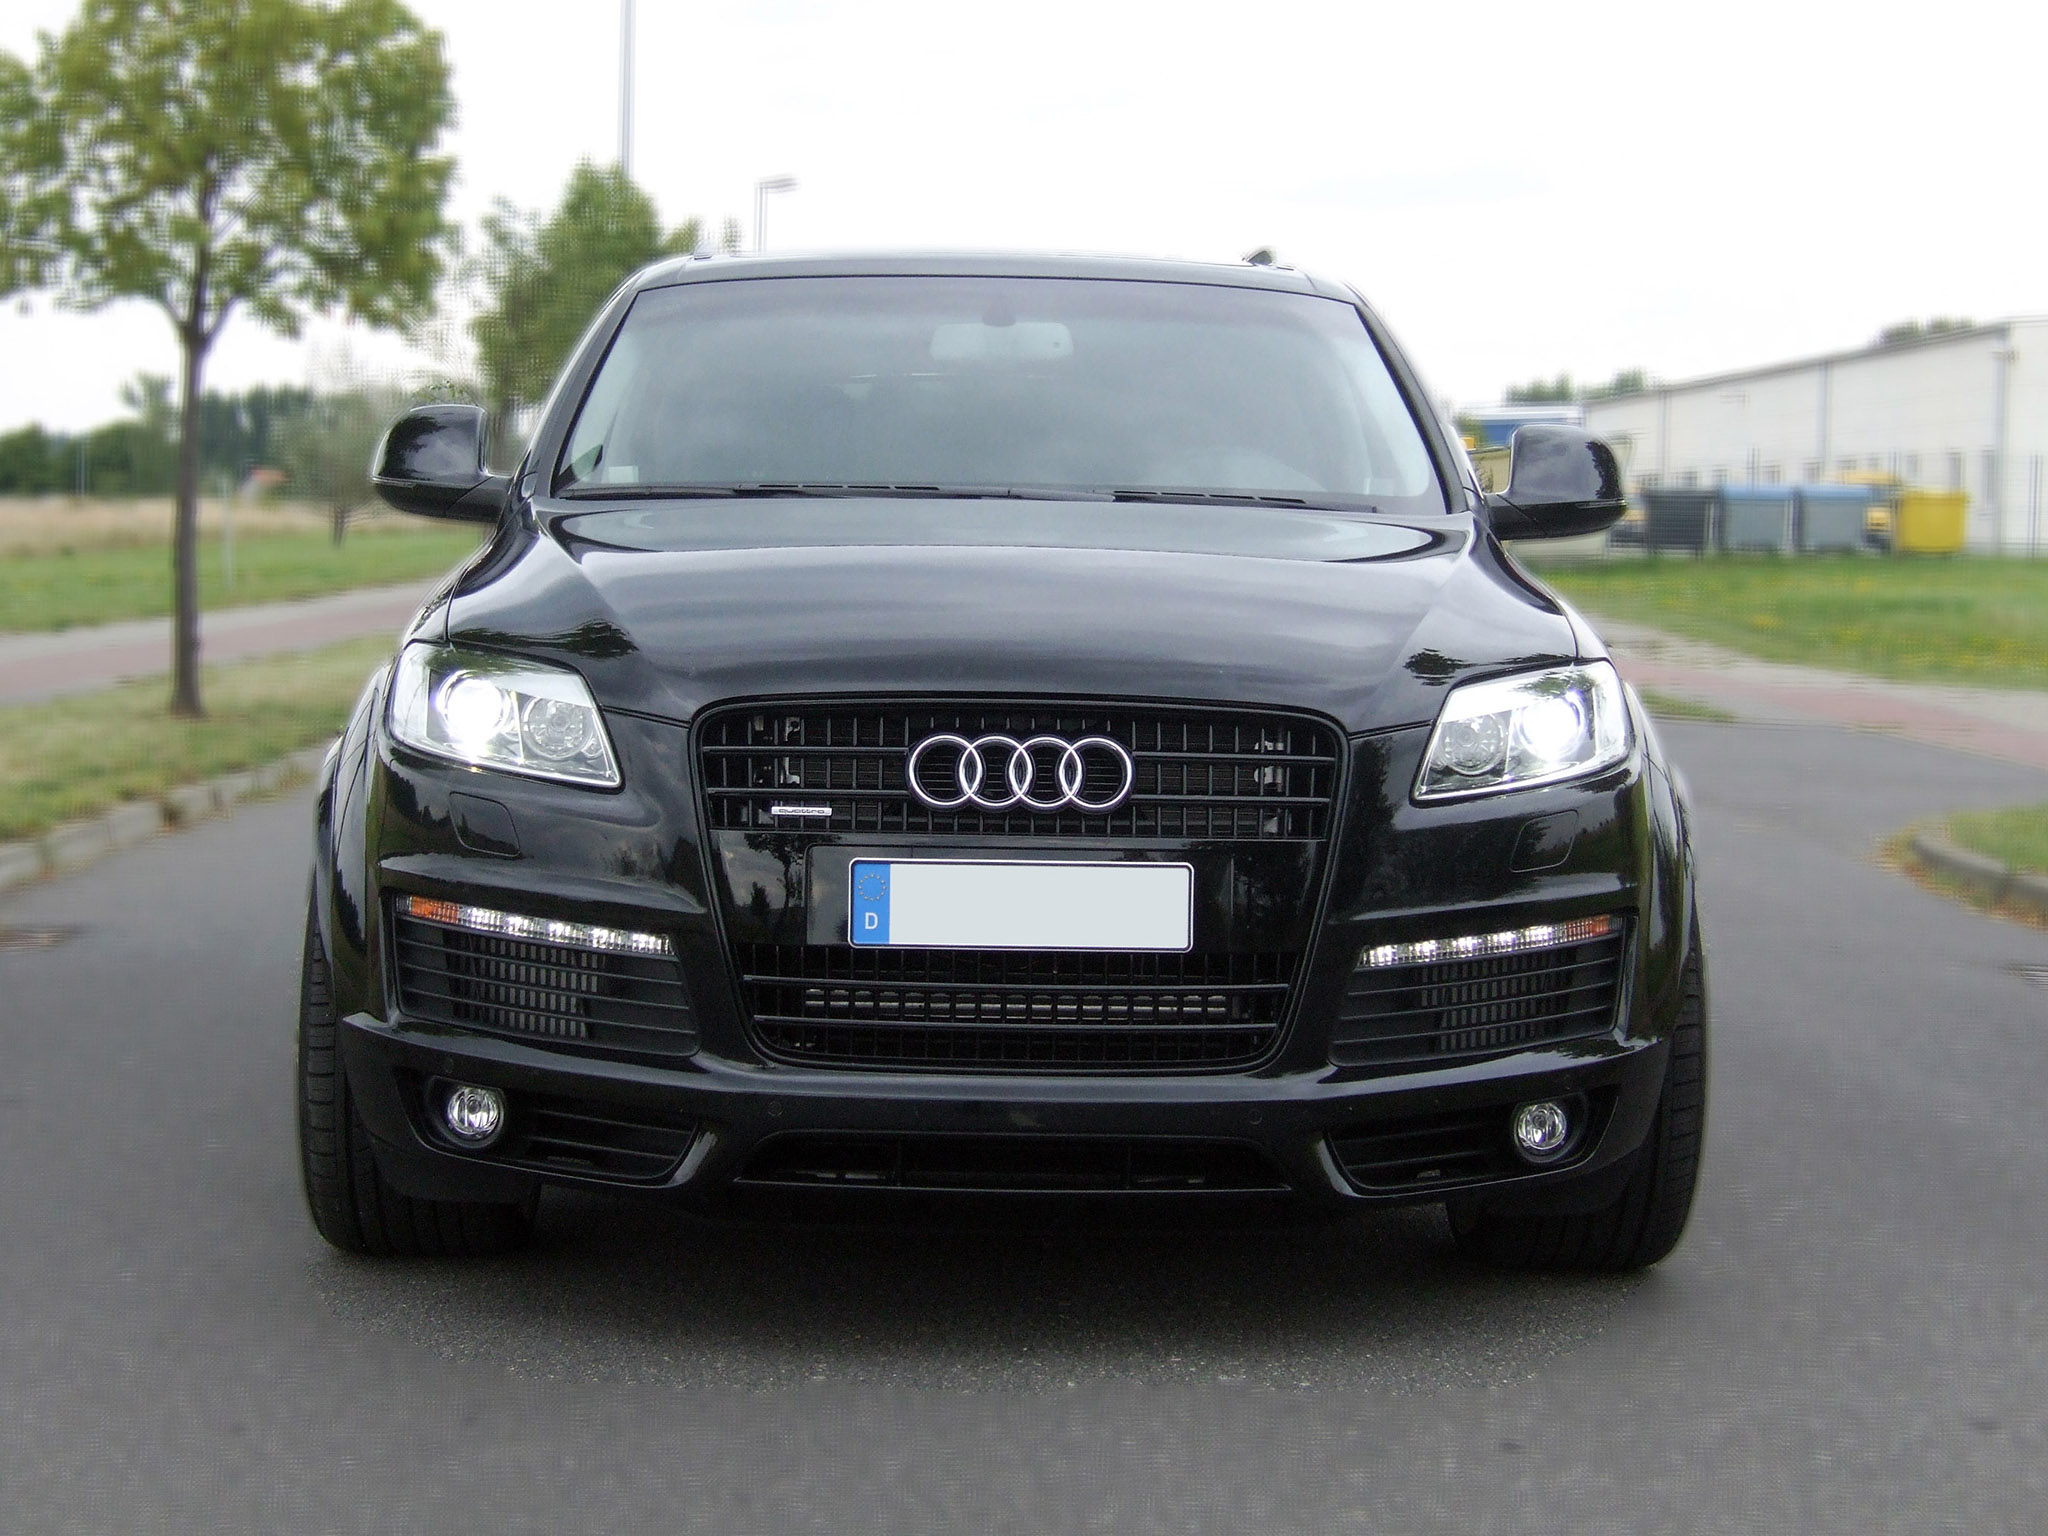 2009 audi q7 pictures information and specs auto. Black Bedroom Furniture Sets. Home Design Ideas